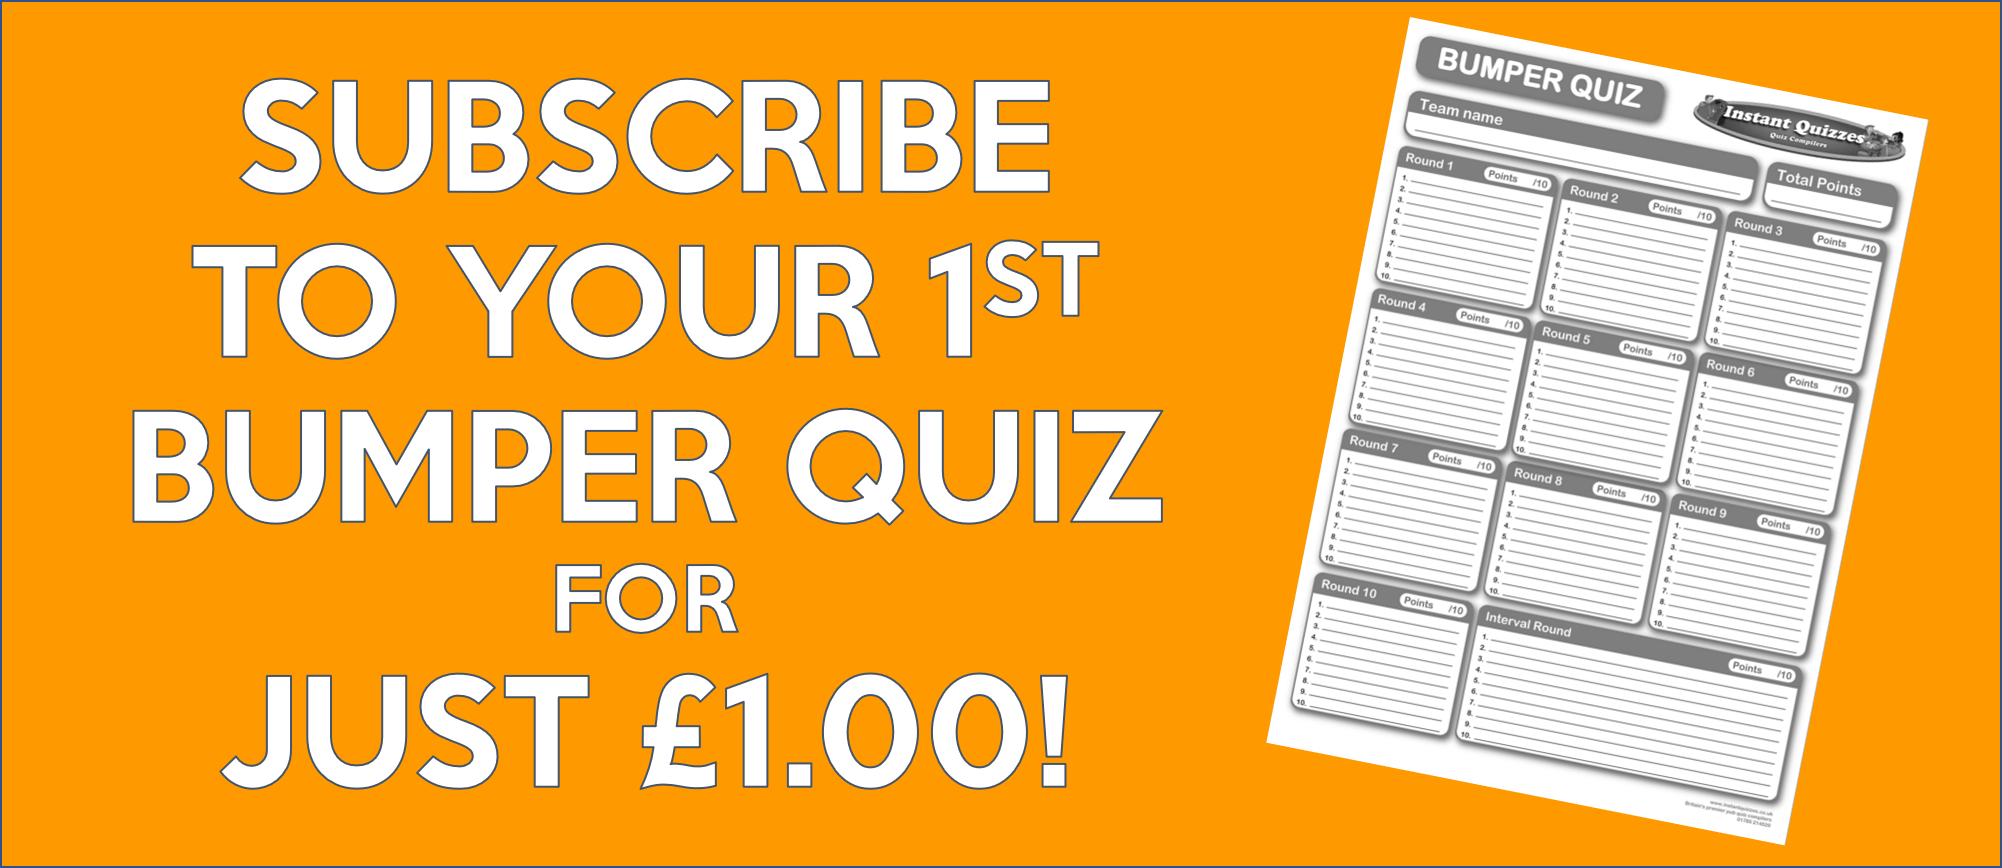 Bumper Quiz - Pay Monthly